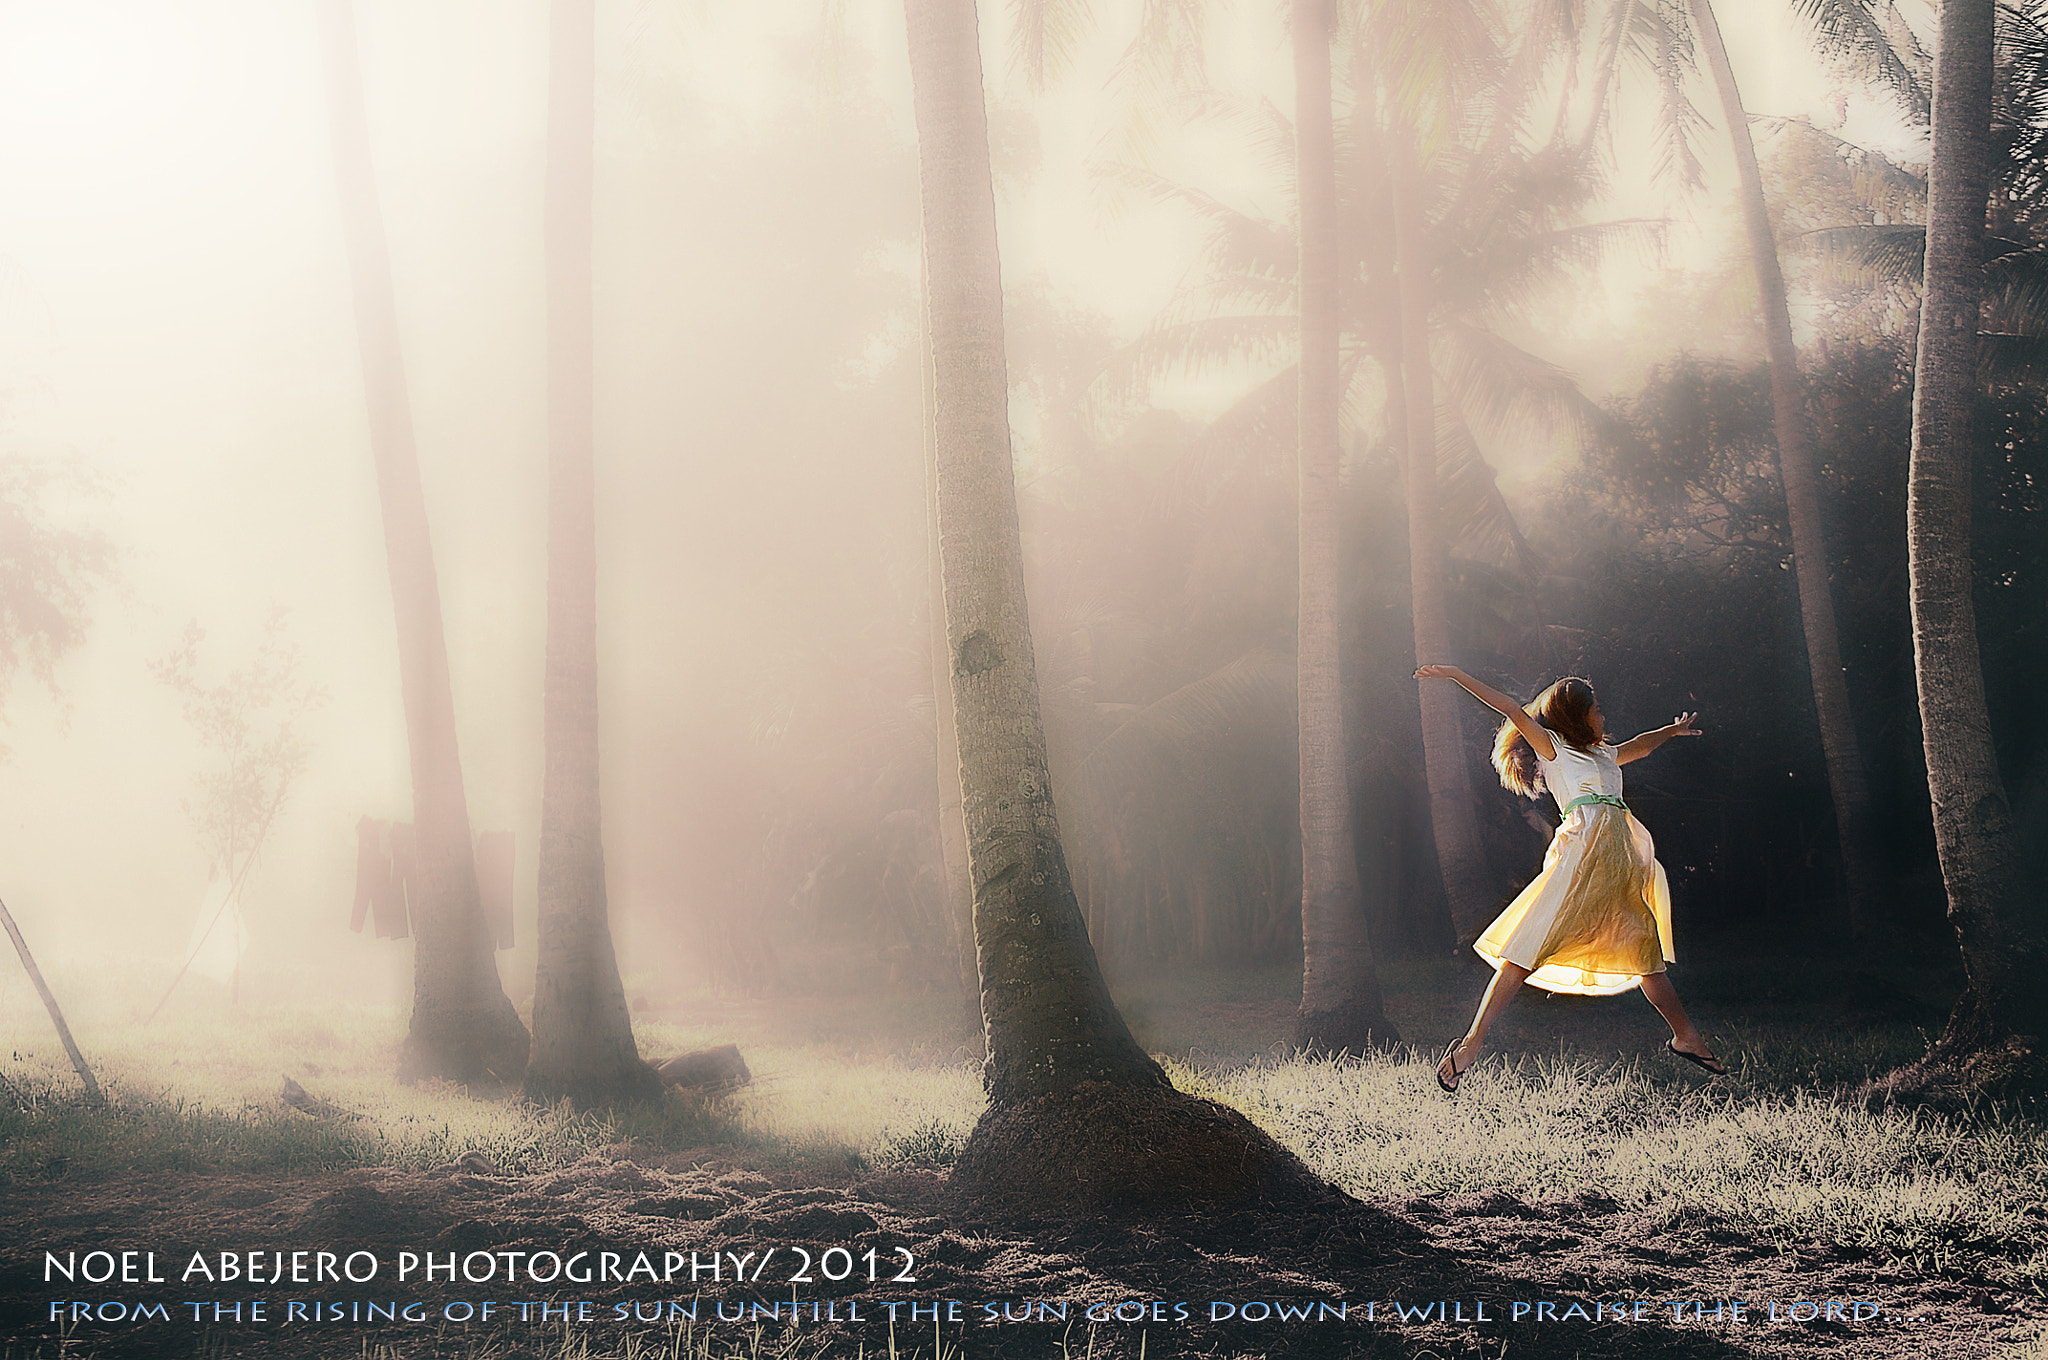 Photograph A Praise dance... by noel abejero on 500px